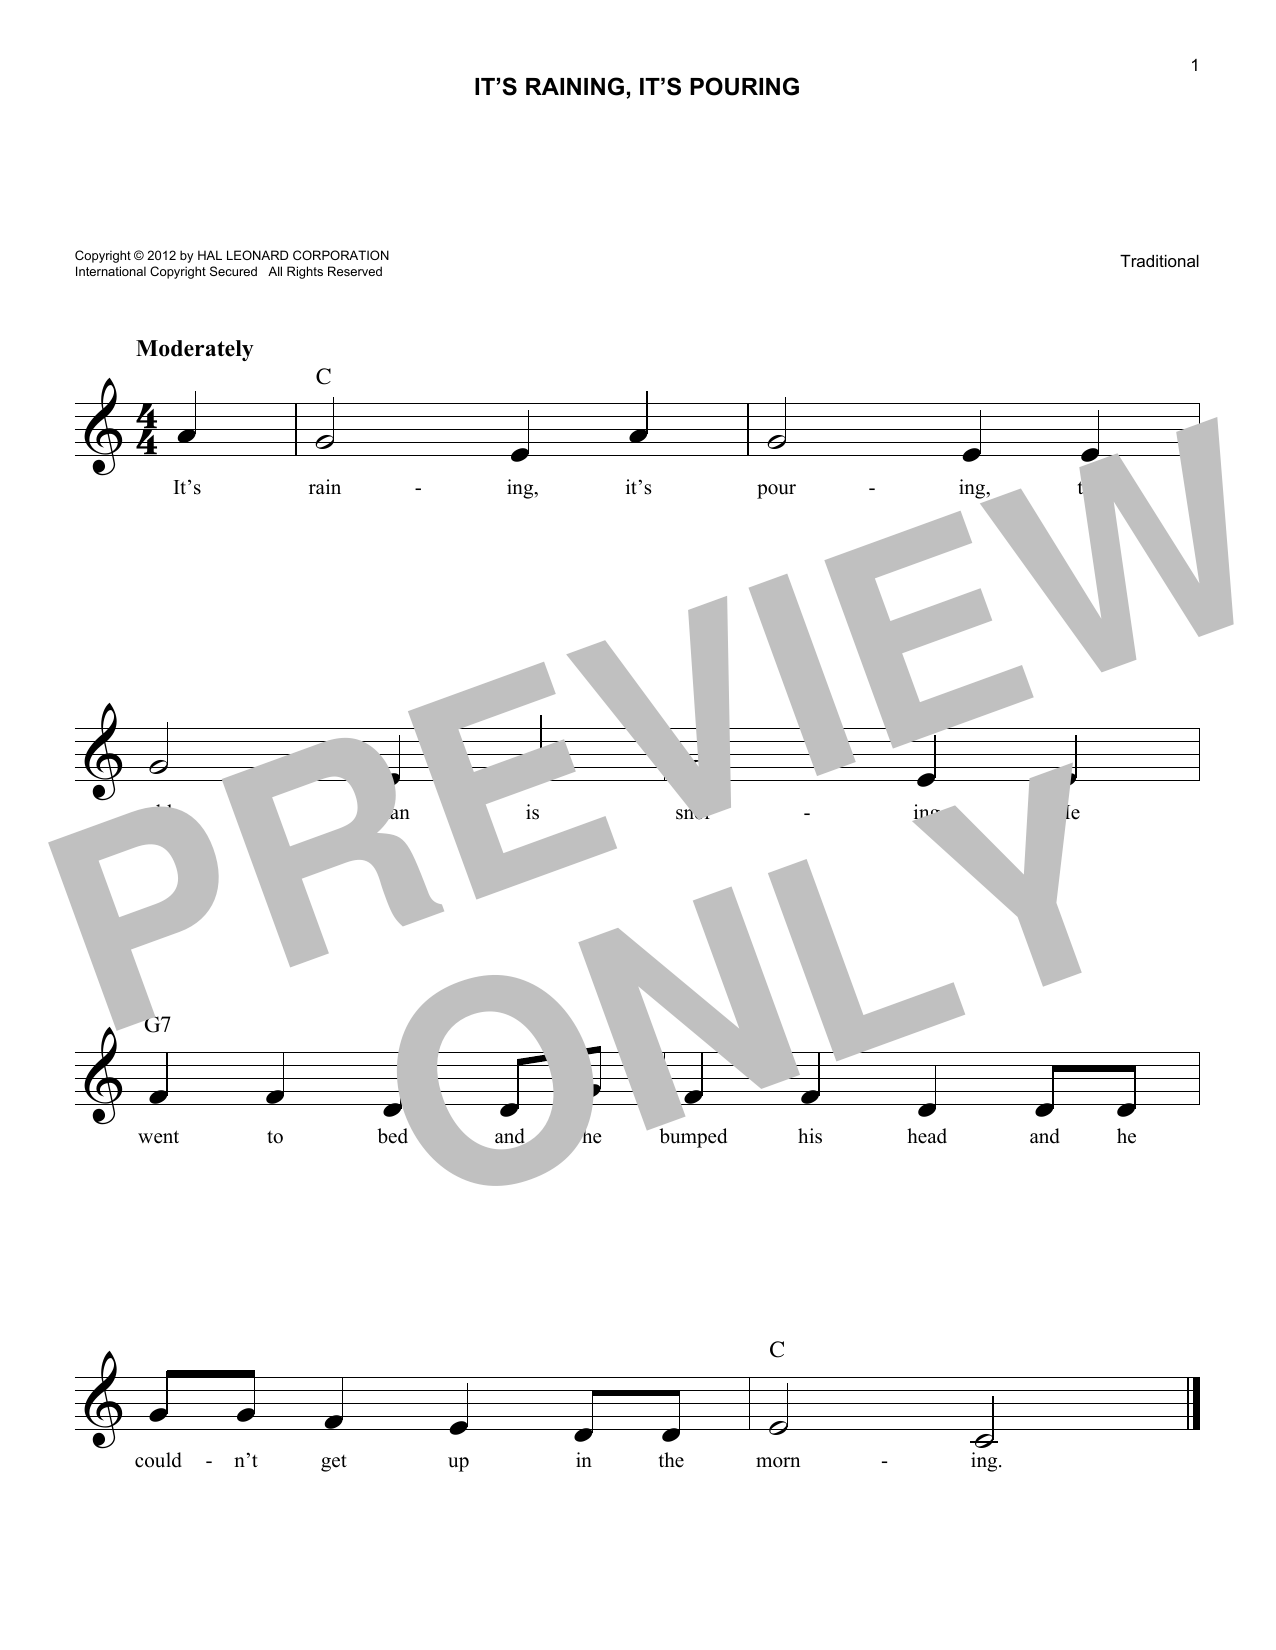 Traditional It's Raining, It's Pouring sheet music notes and chords. Download Printable PDF.